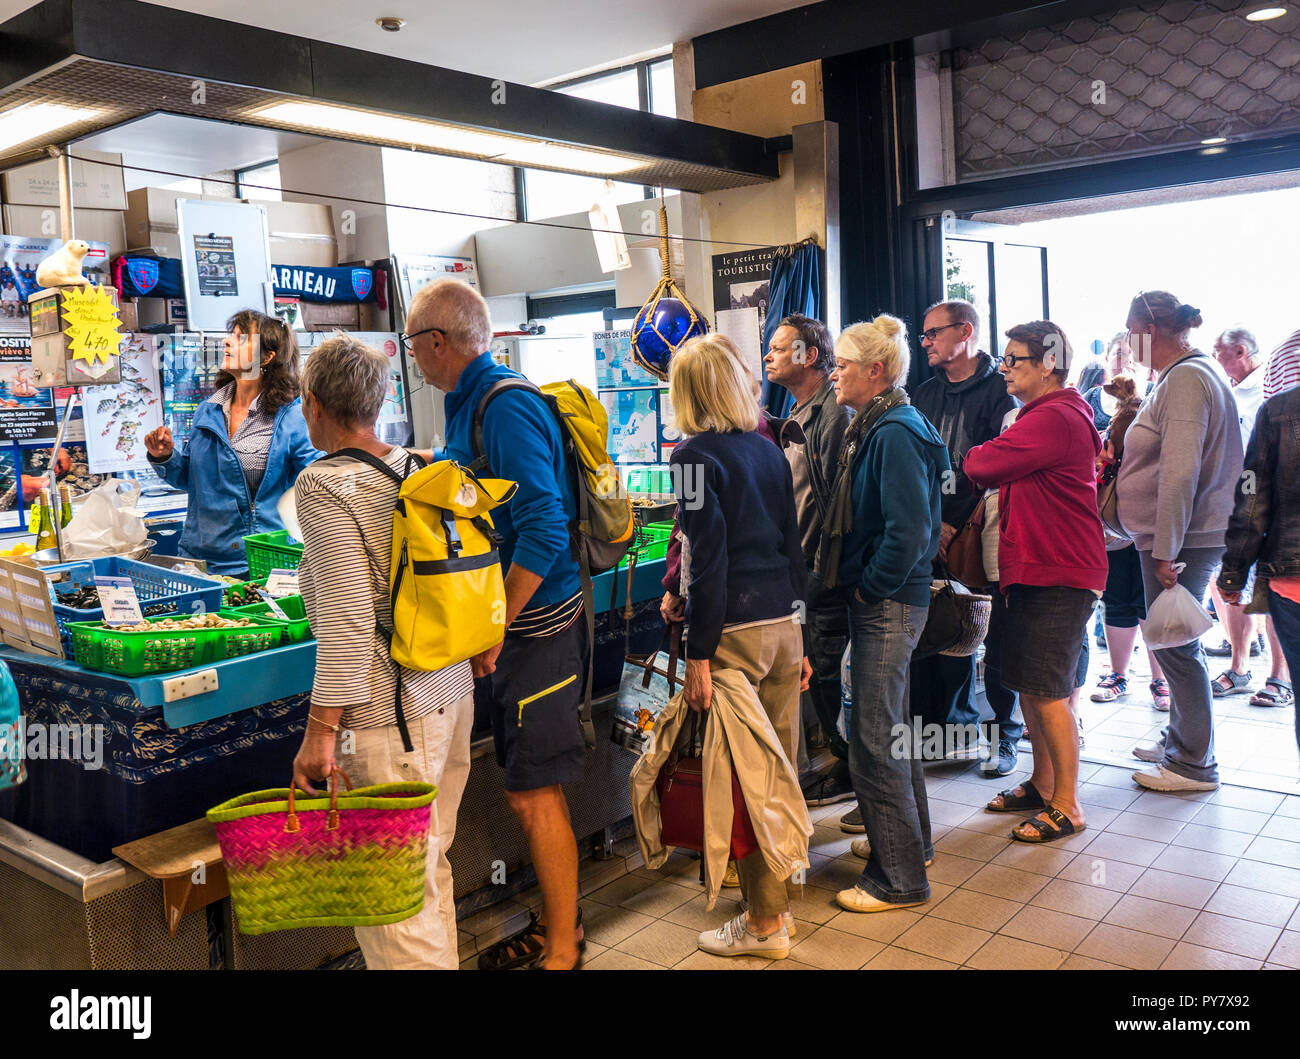 BRETON FEMALE FISHMONGER FISH MARKET CONCARNEAU HALLES Concarneau Busy Fish Market stall with fresh local crustacea  display for sale Brittany France - Stock Image